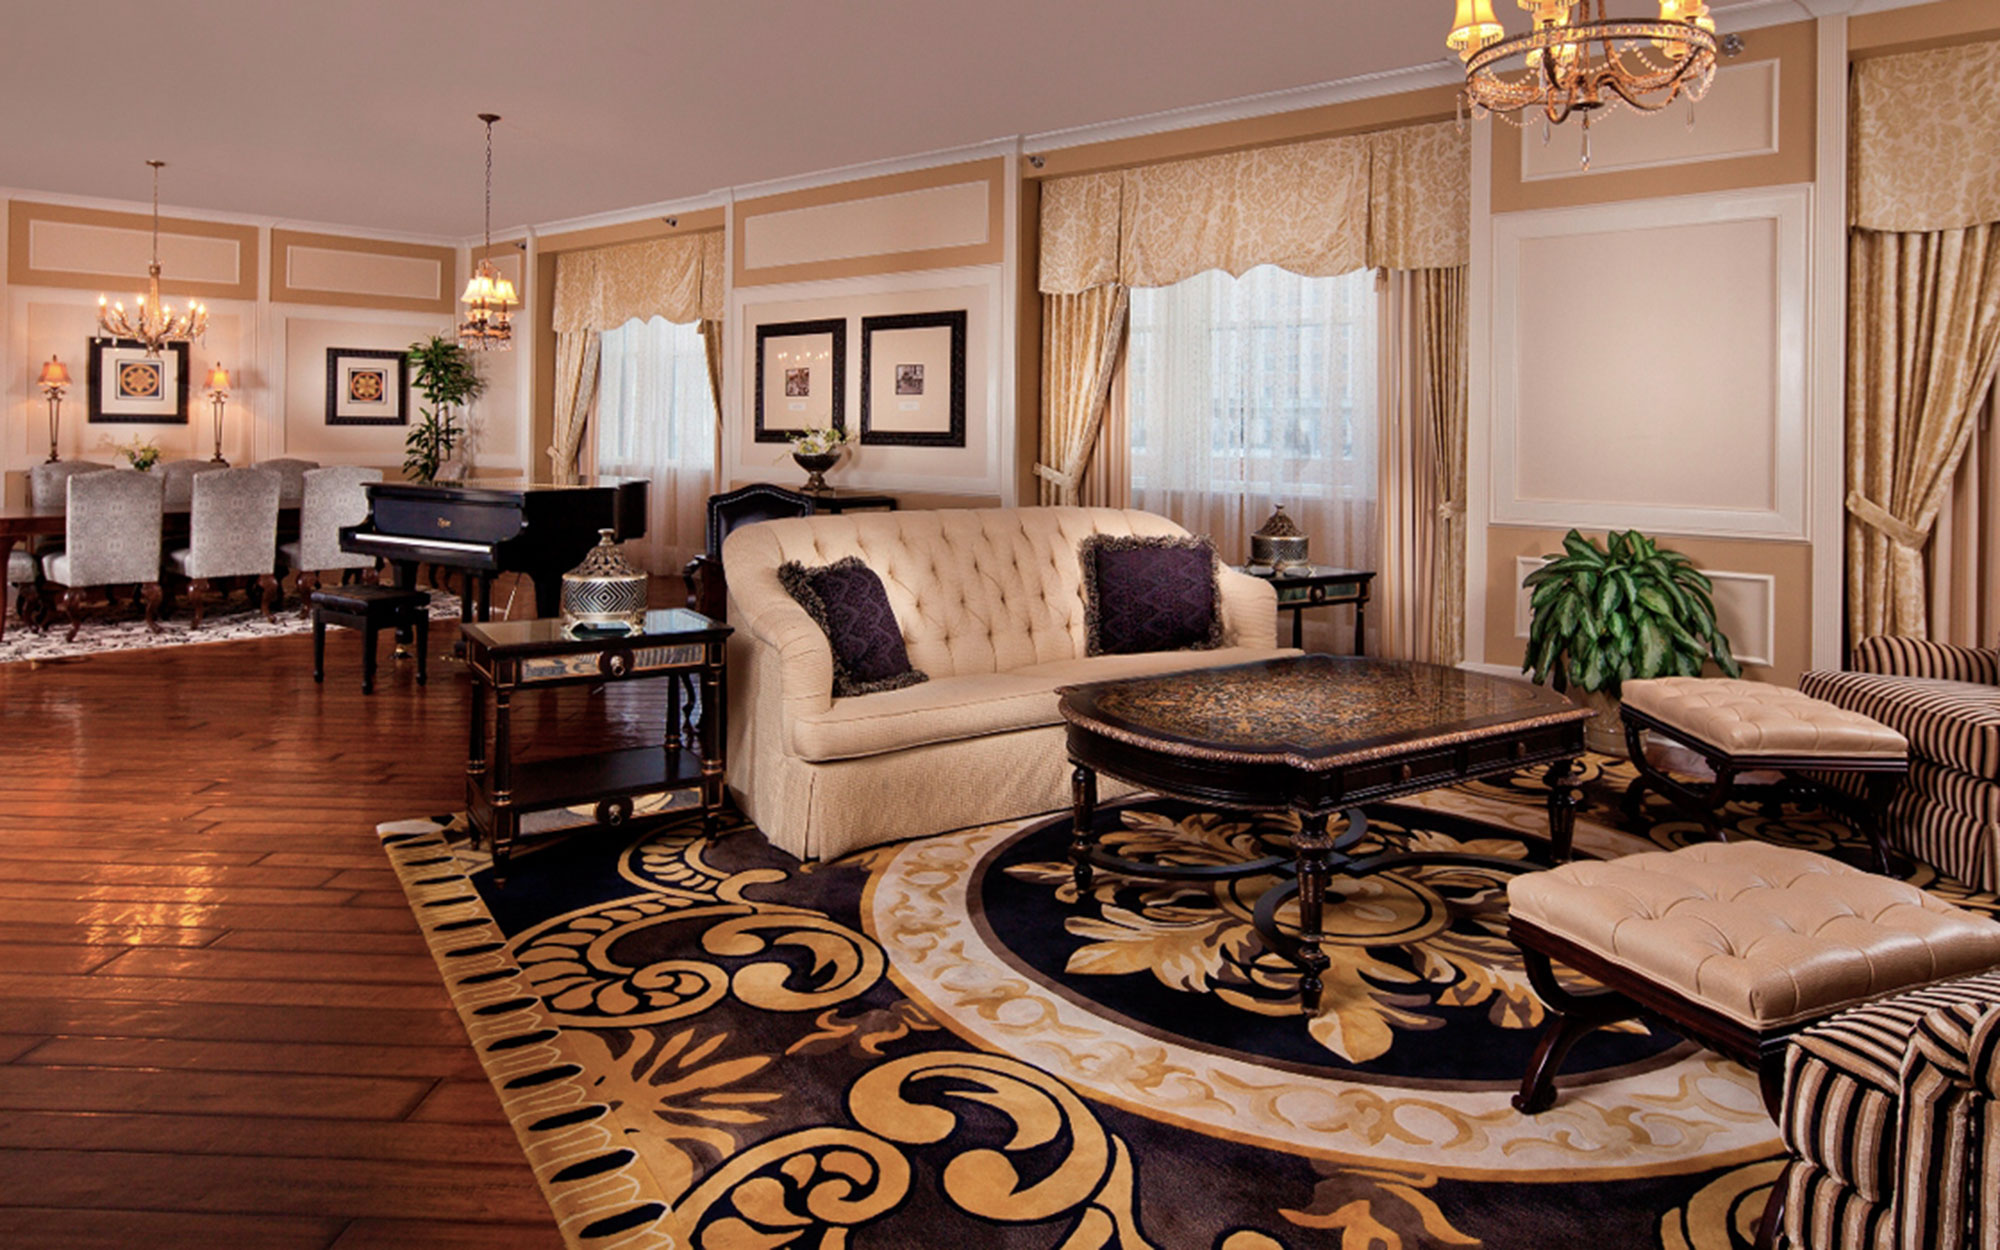 Louisiana: The Roosevelt Hotel, New Orleans